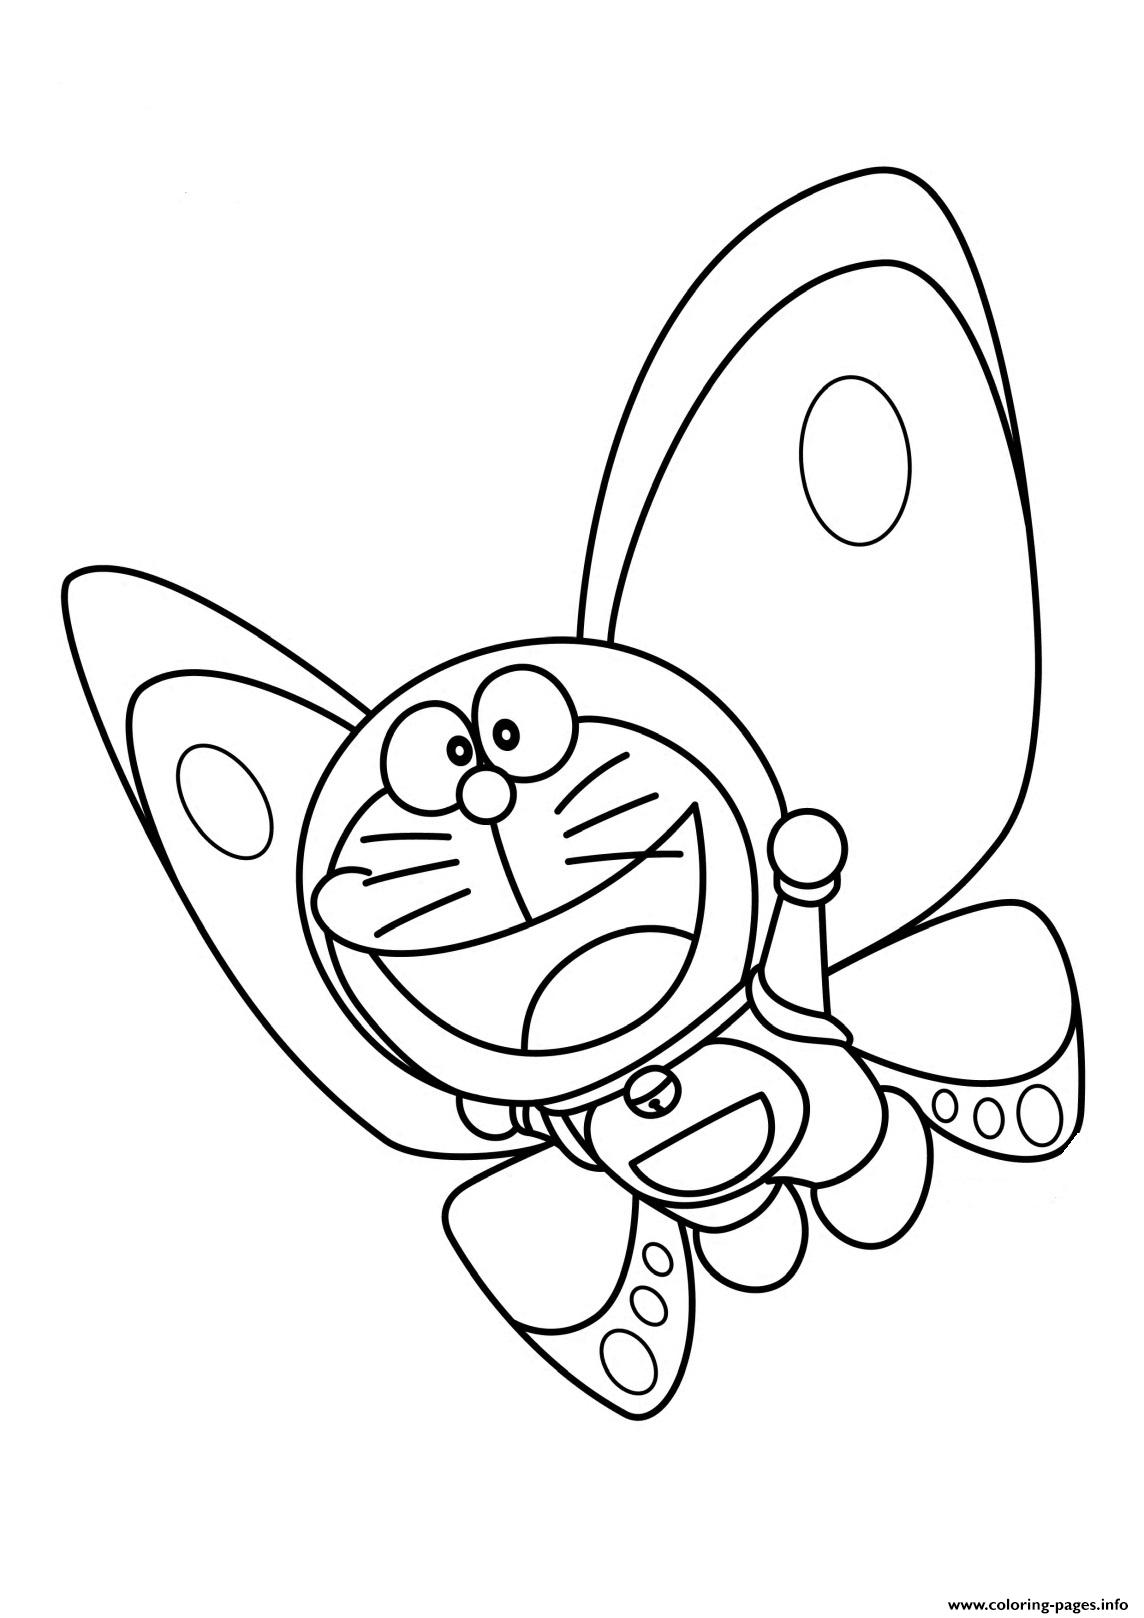 Doraemon As Butterfly C1b4 Coloring Pages